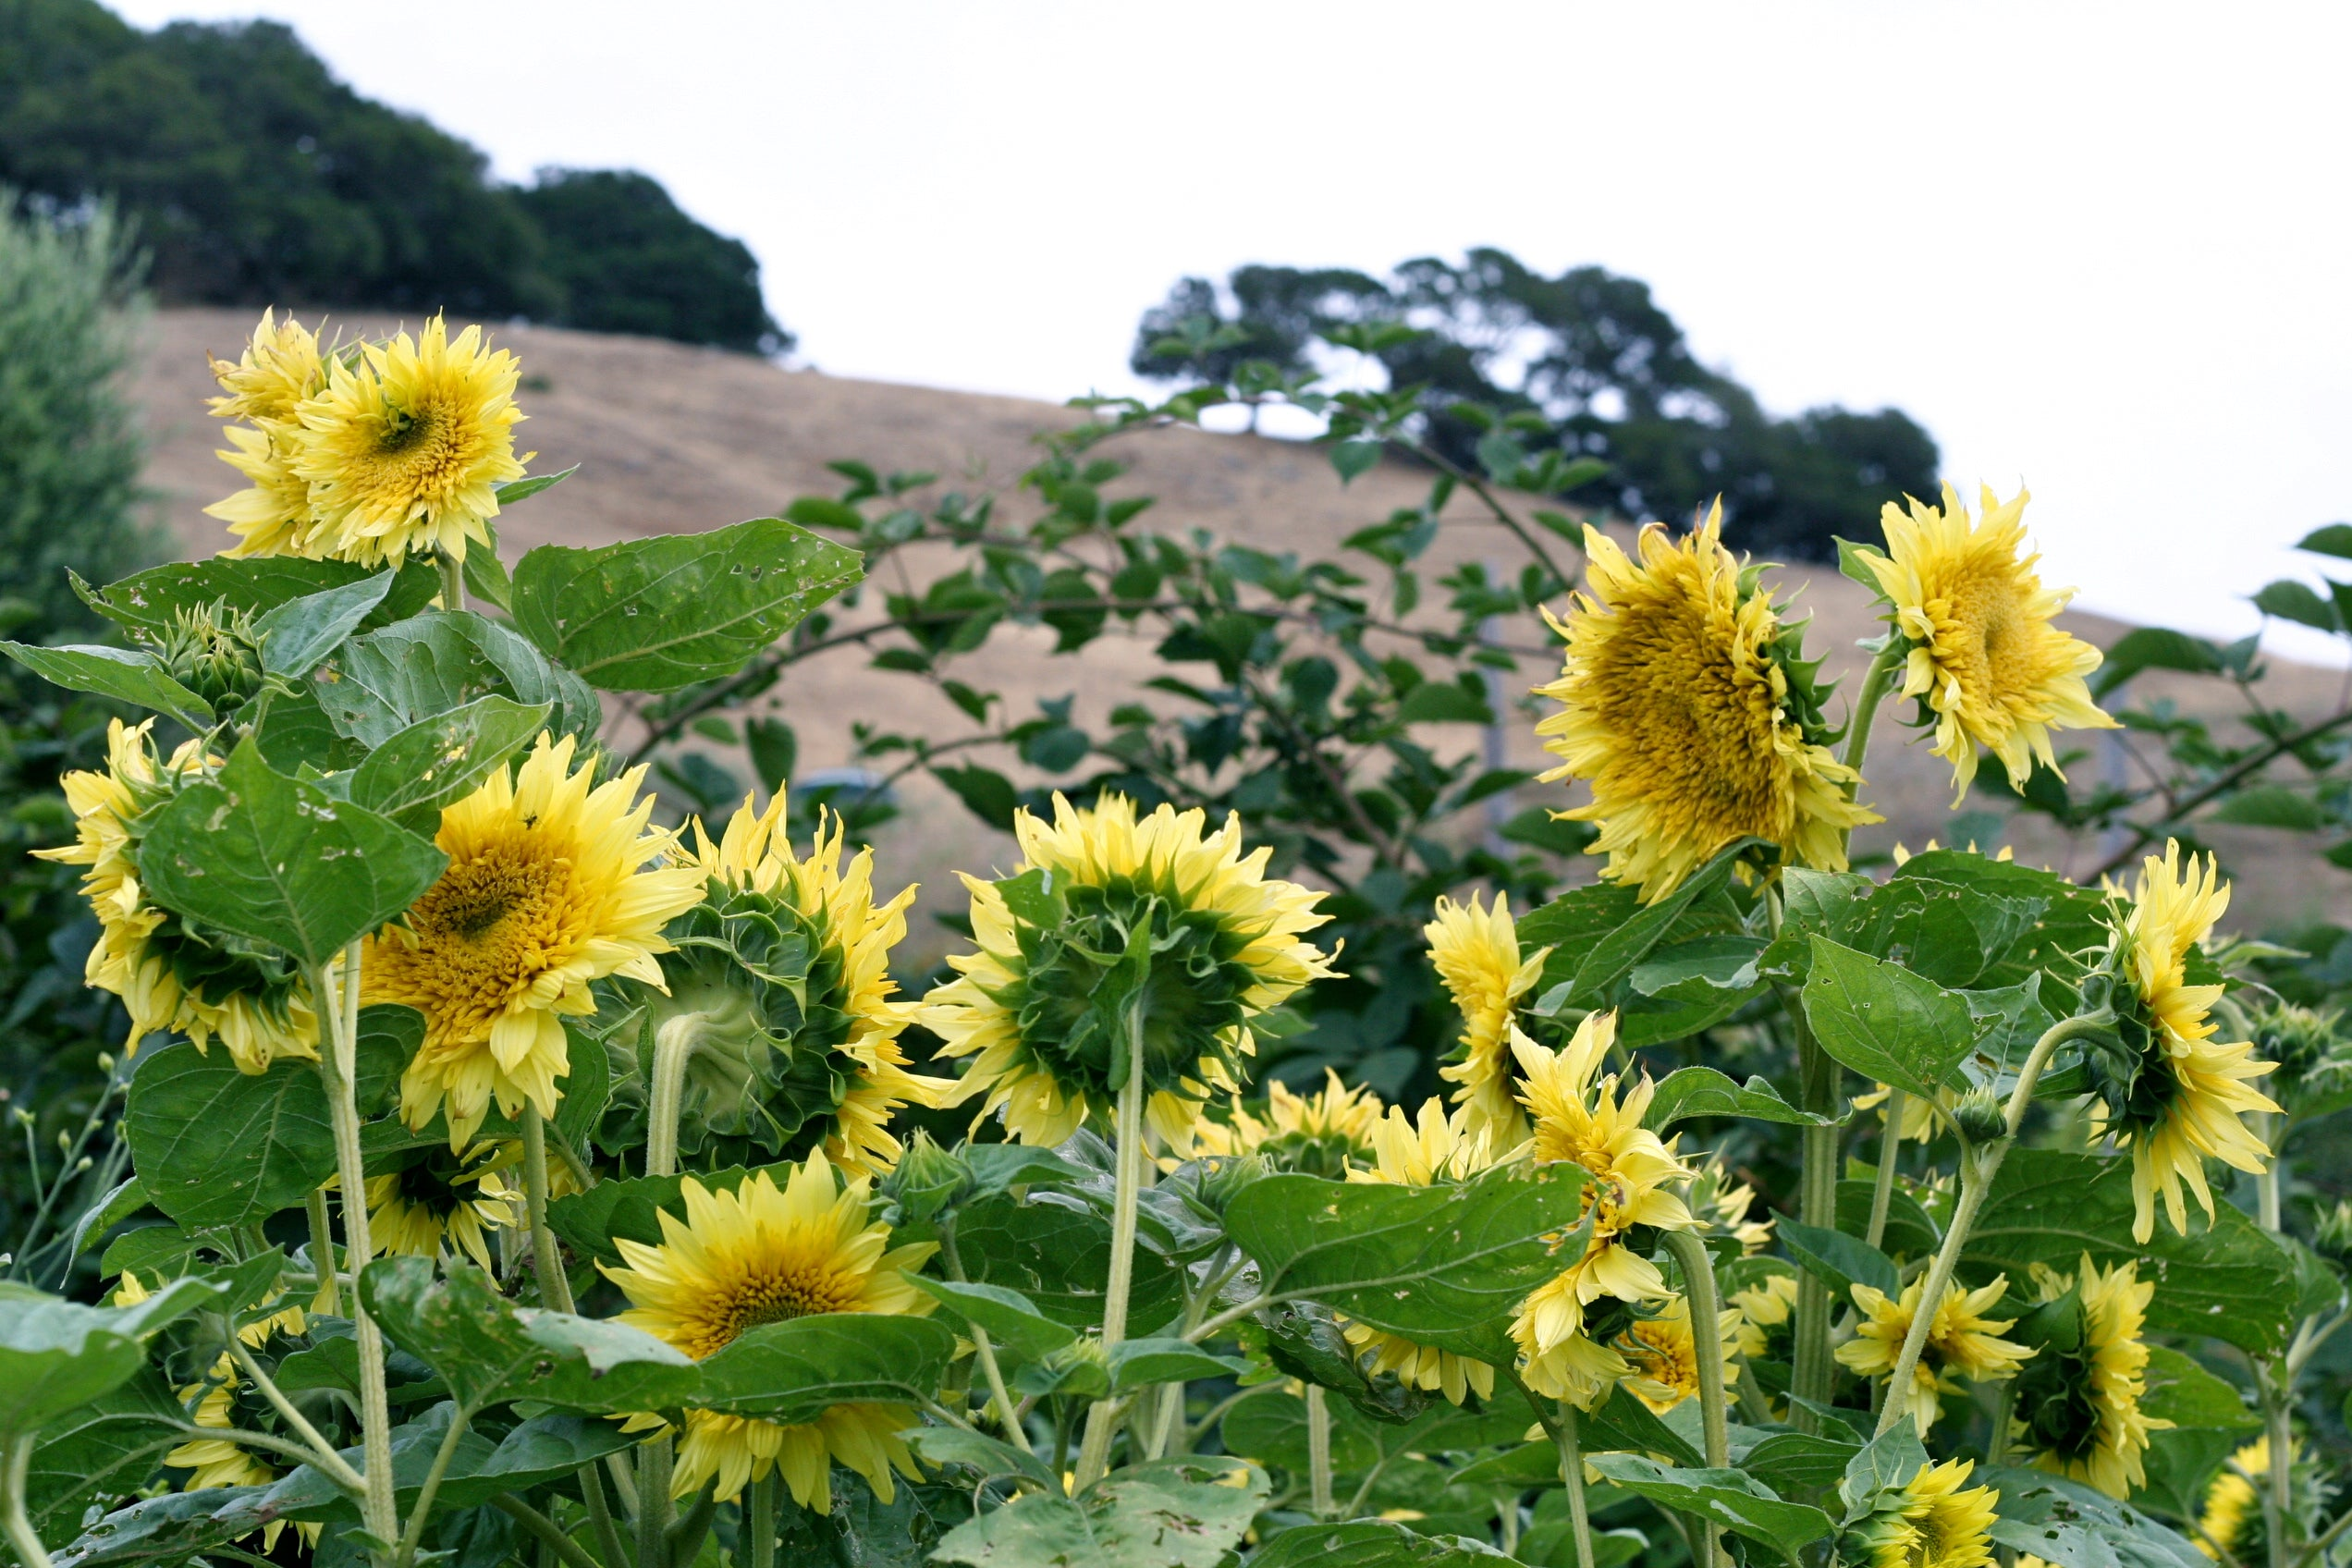 sunflowers looking out on the hills of mcevoy ranch